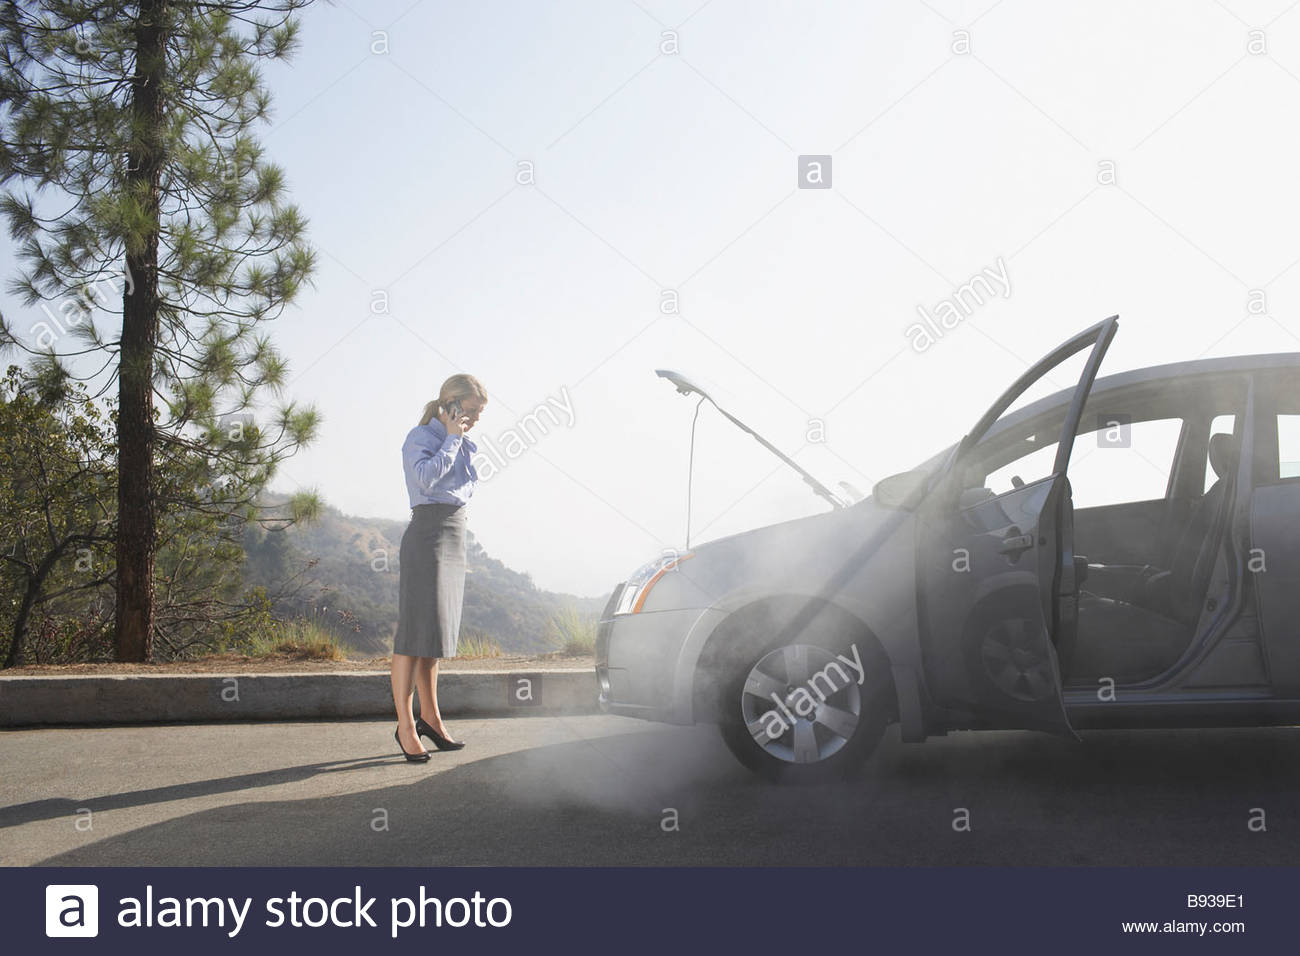 Woman calling for roadside assistance - Stock Image